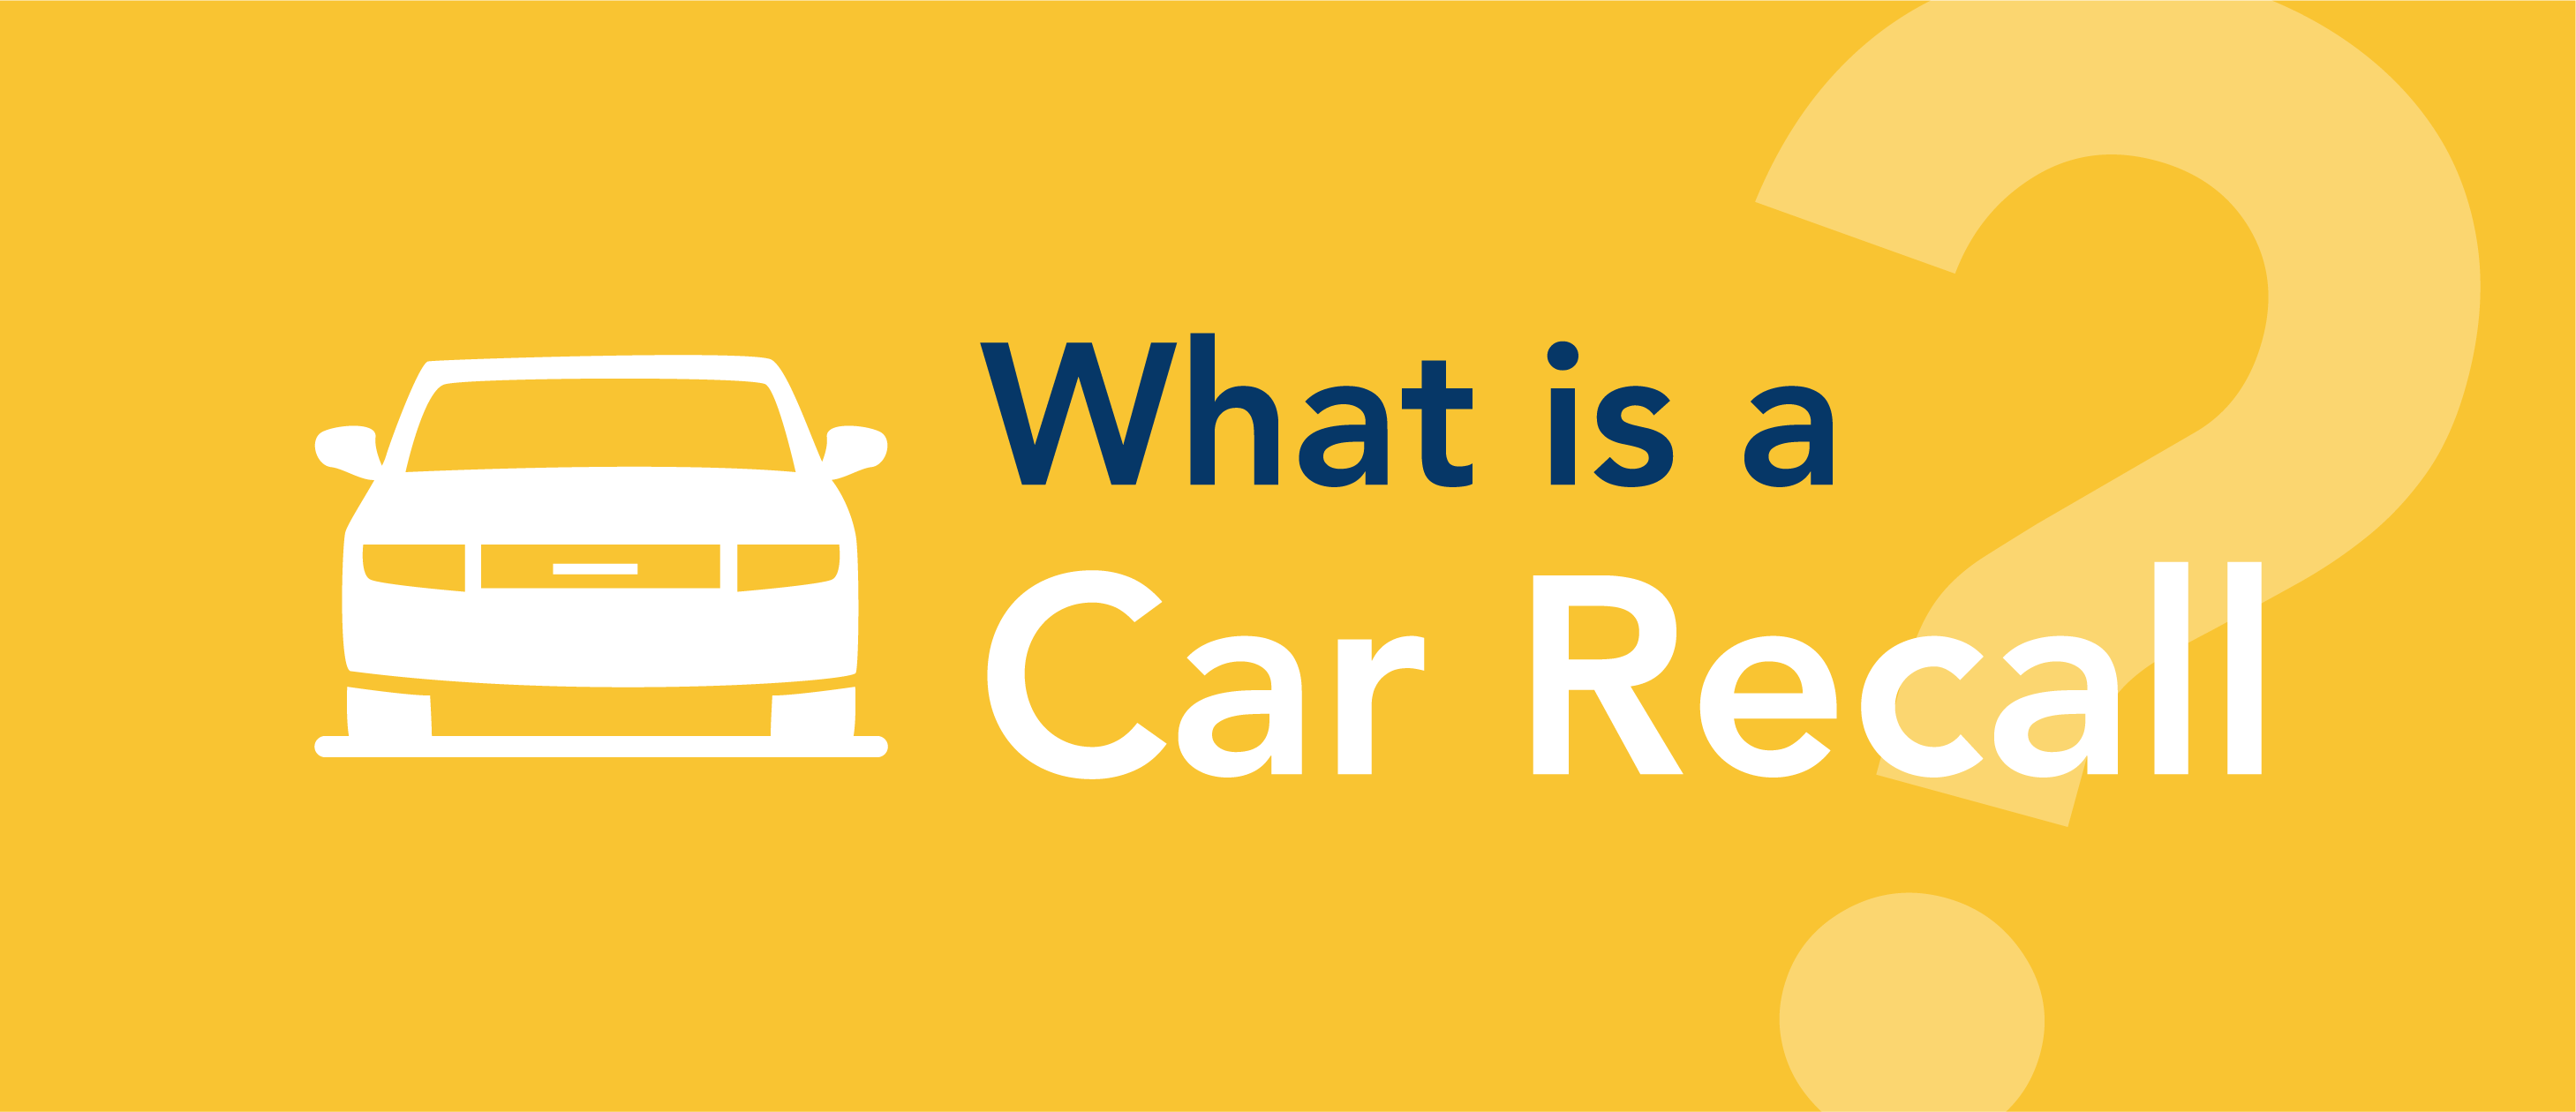 What is a car recall?